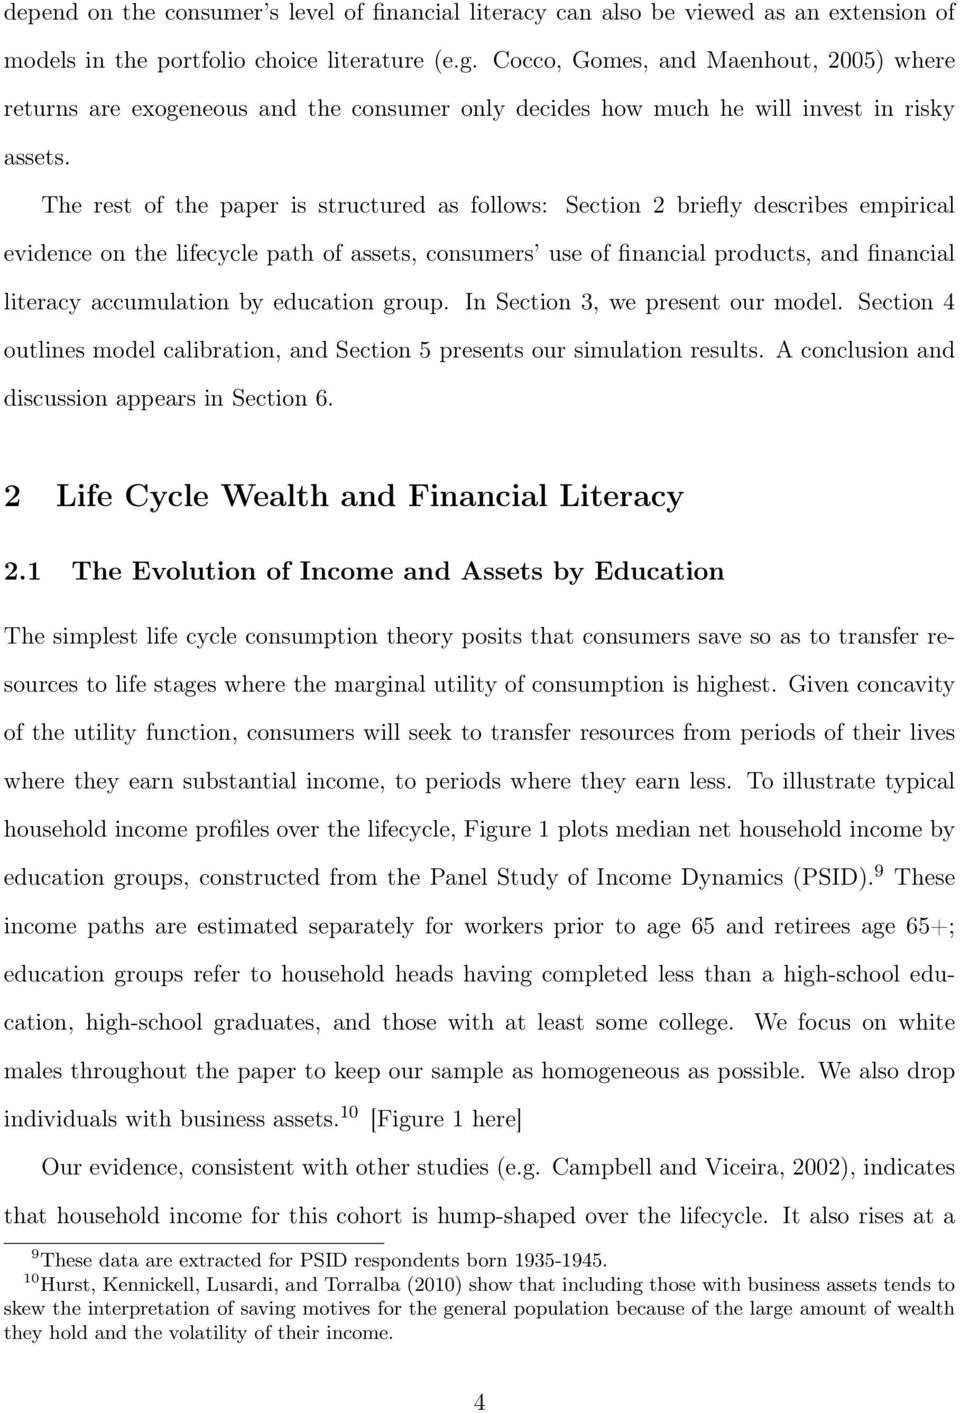 The rest of the paper is structured as follows: Section 2 briefly describes empirical evidence on the lifecycle path of assets, consumers use of financial products, and financial literacy